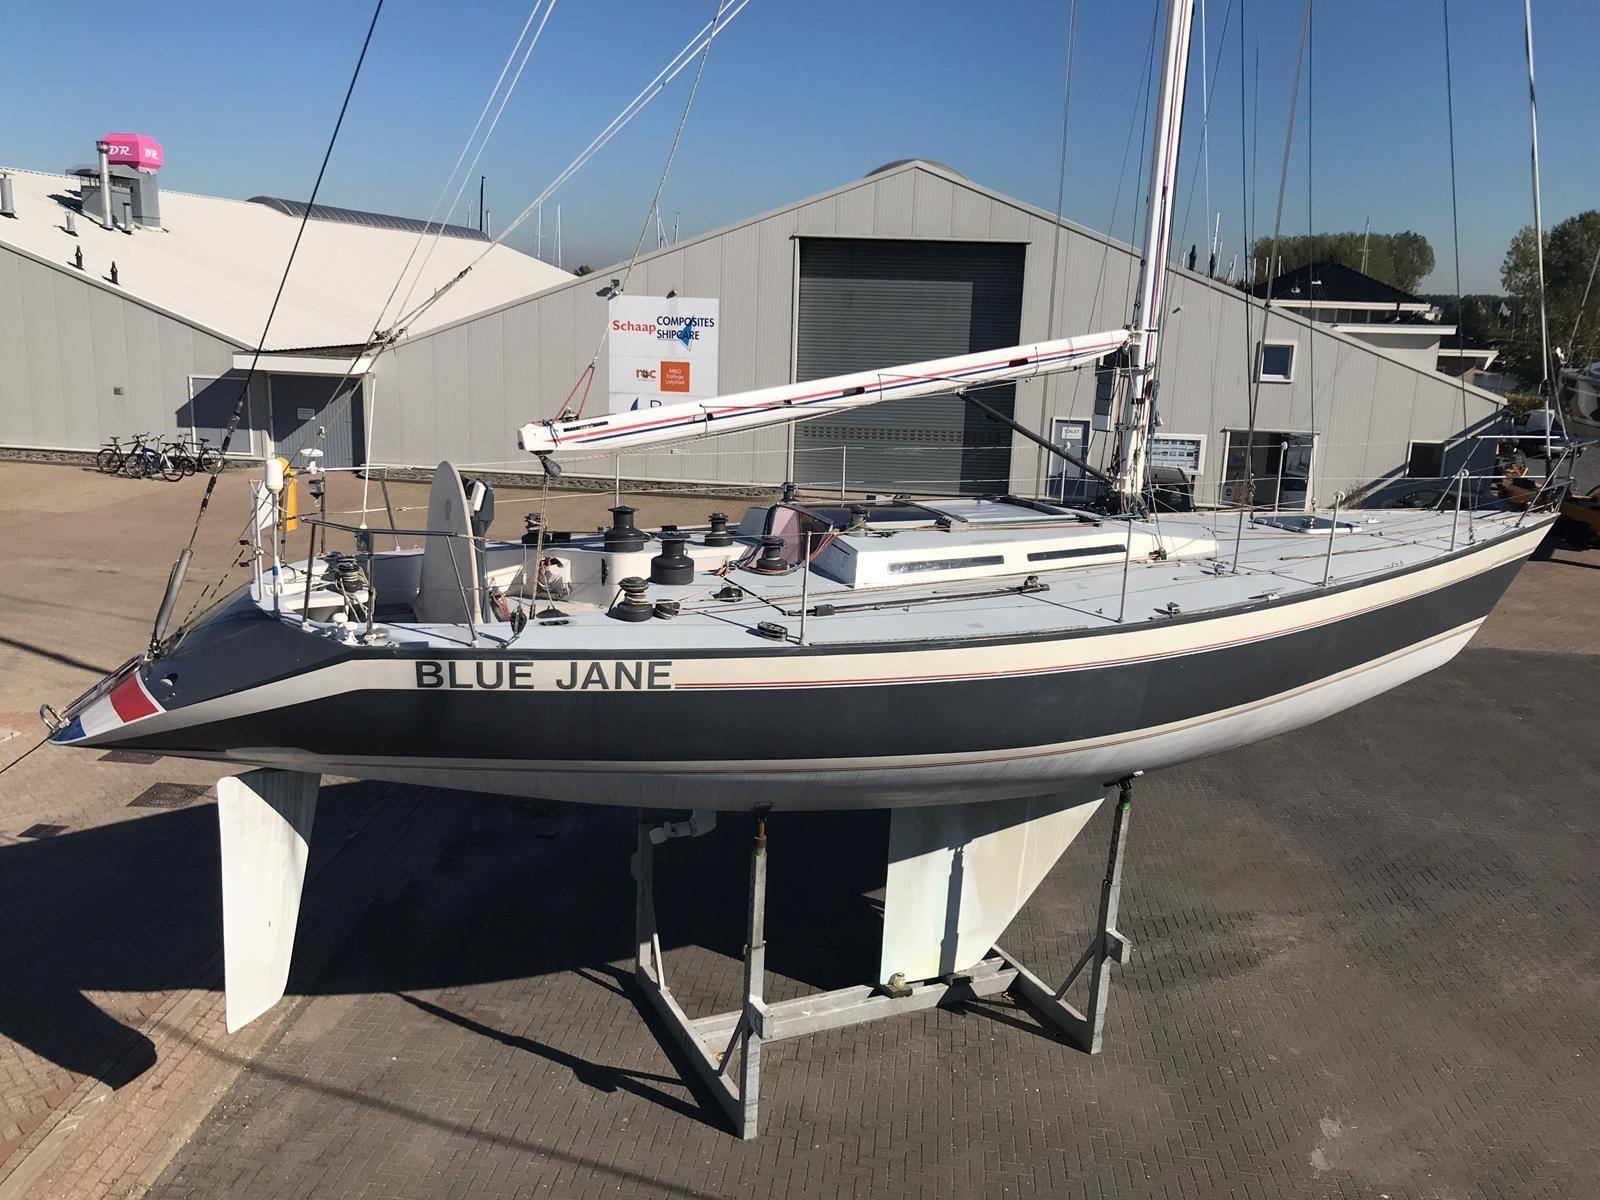 Sail Boat Engine Wiring Harness Smart Electrical Diagram 1982 Royal Huisman 43 Frers Design For Sale Rhyachtworld